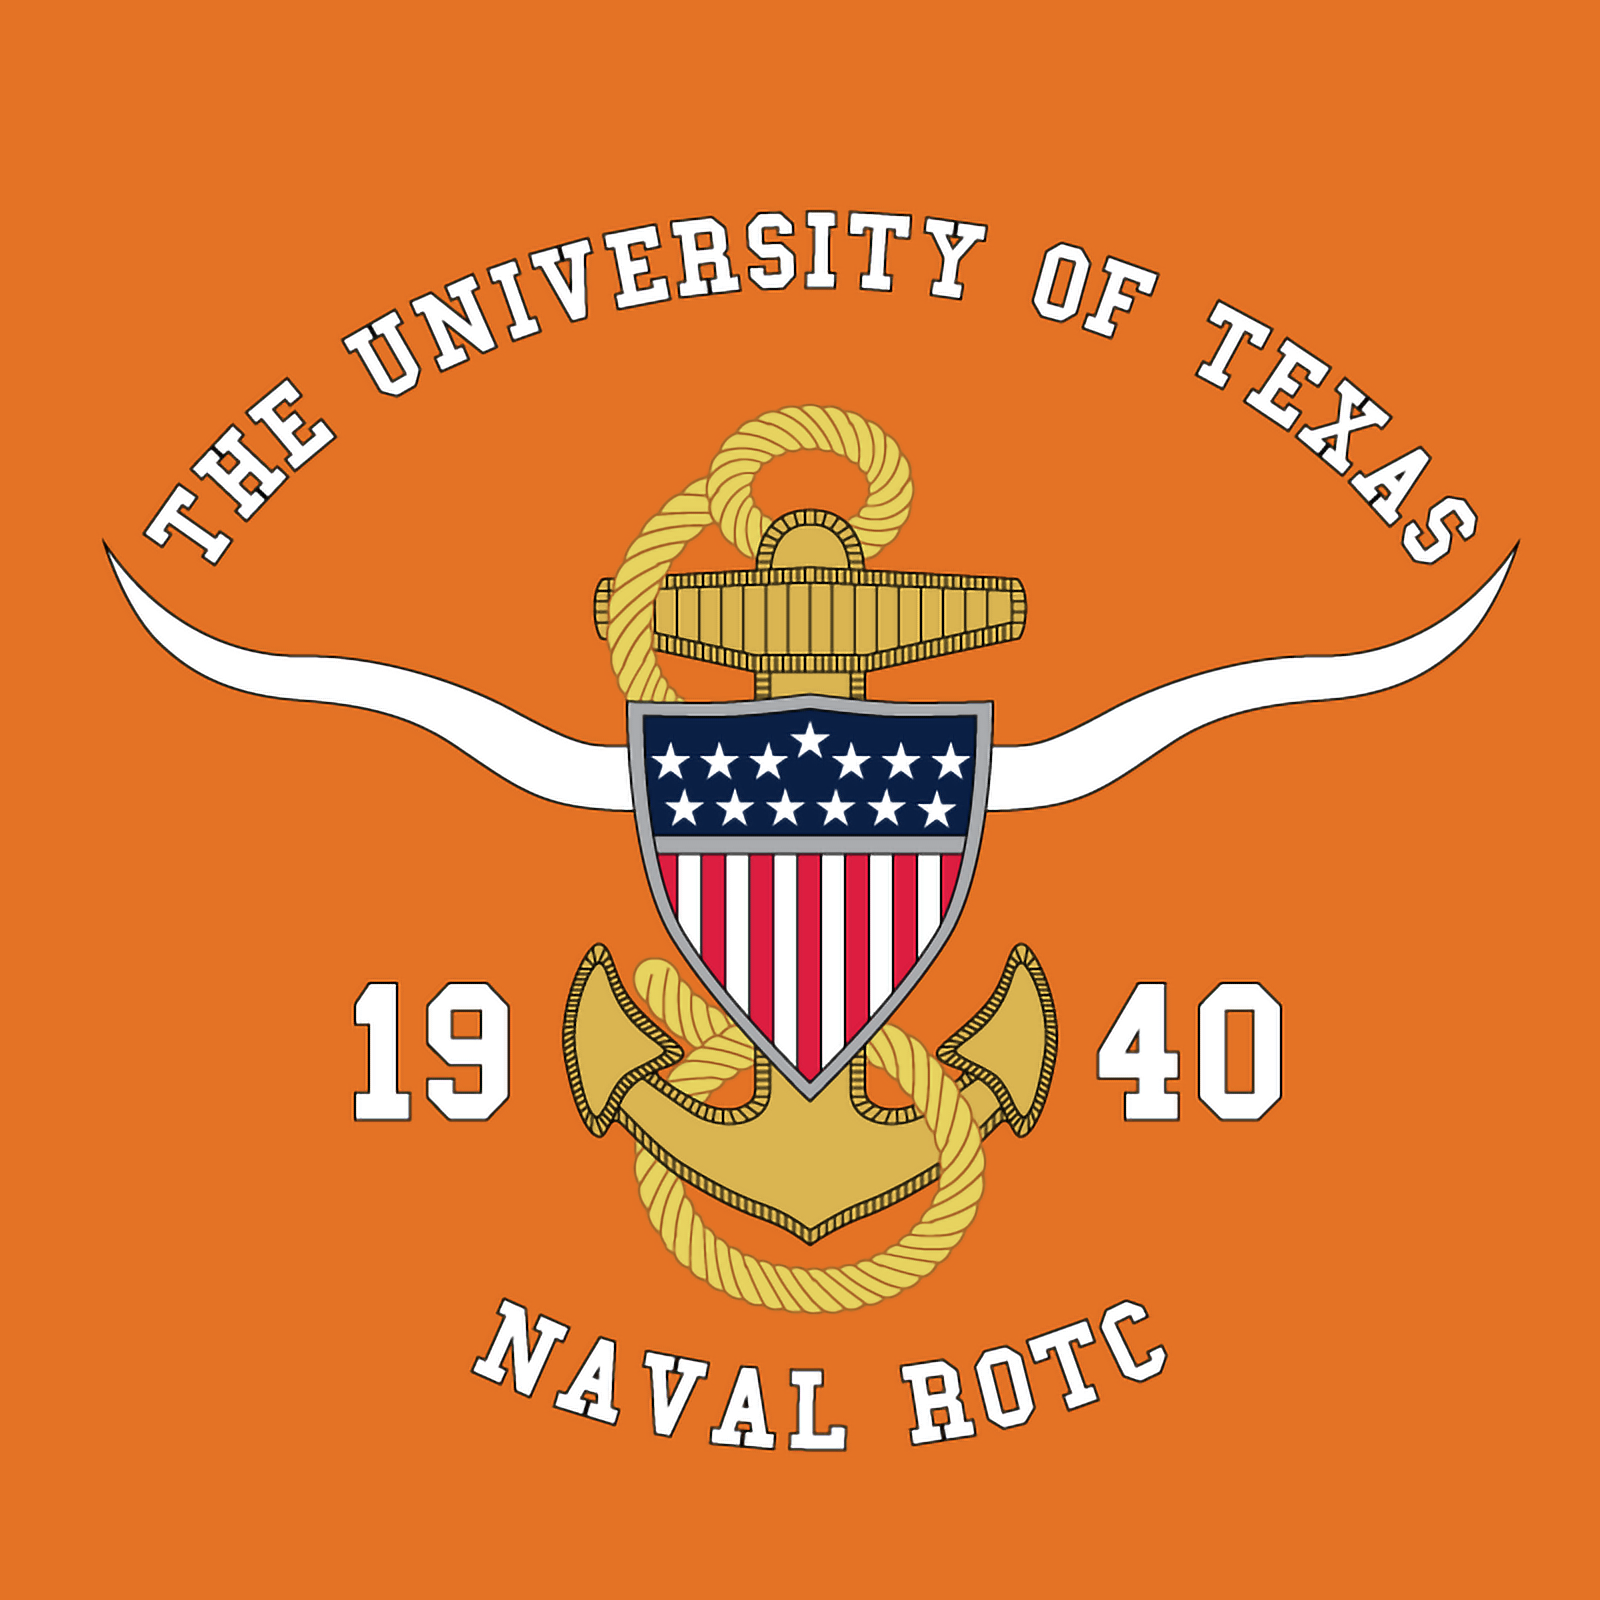 University of Texas NROTC Logo